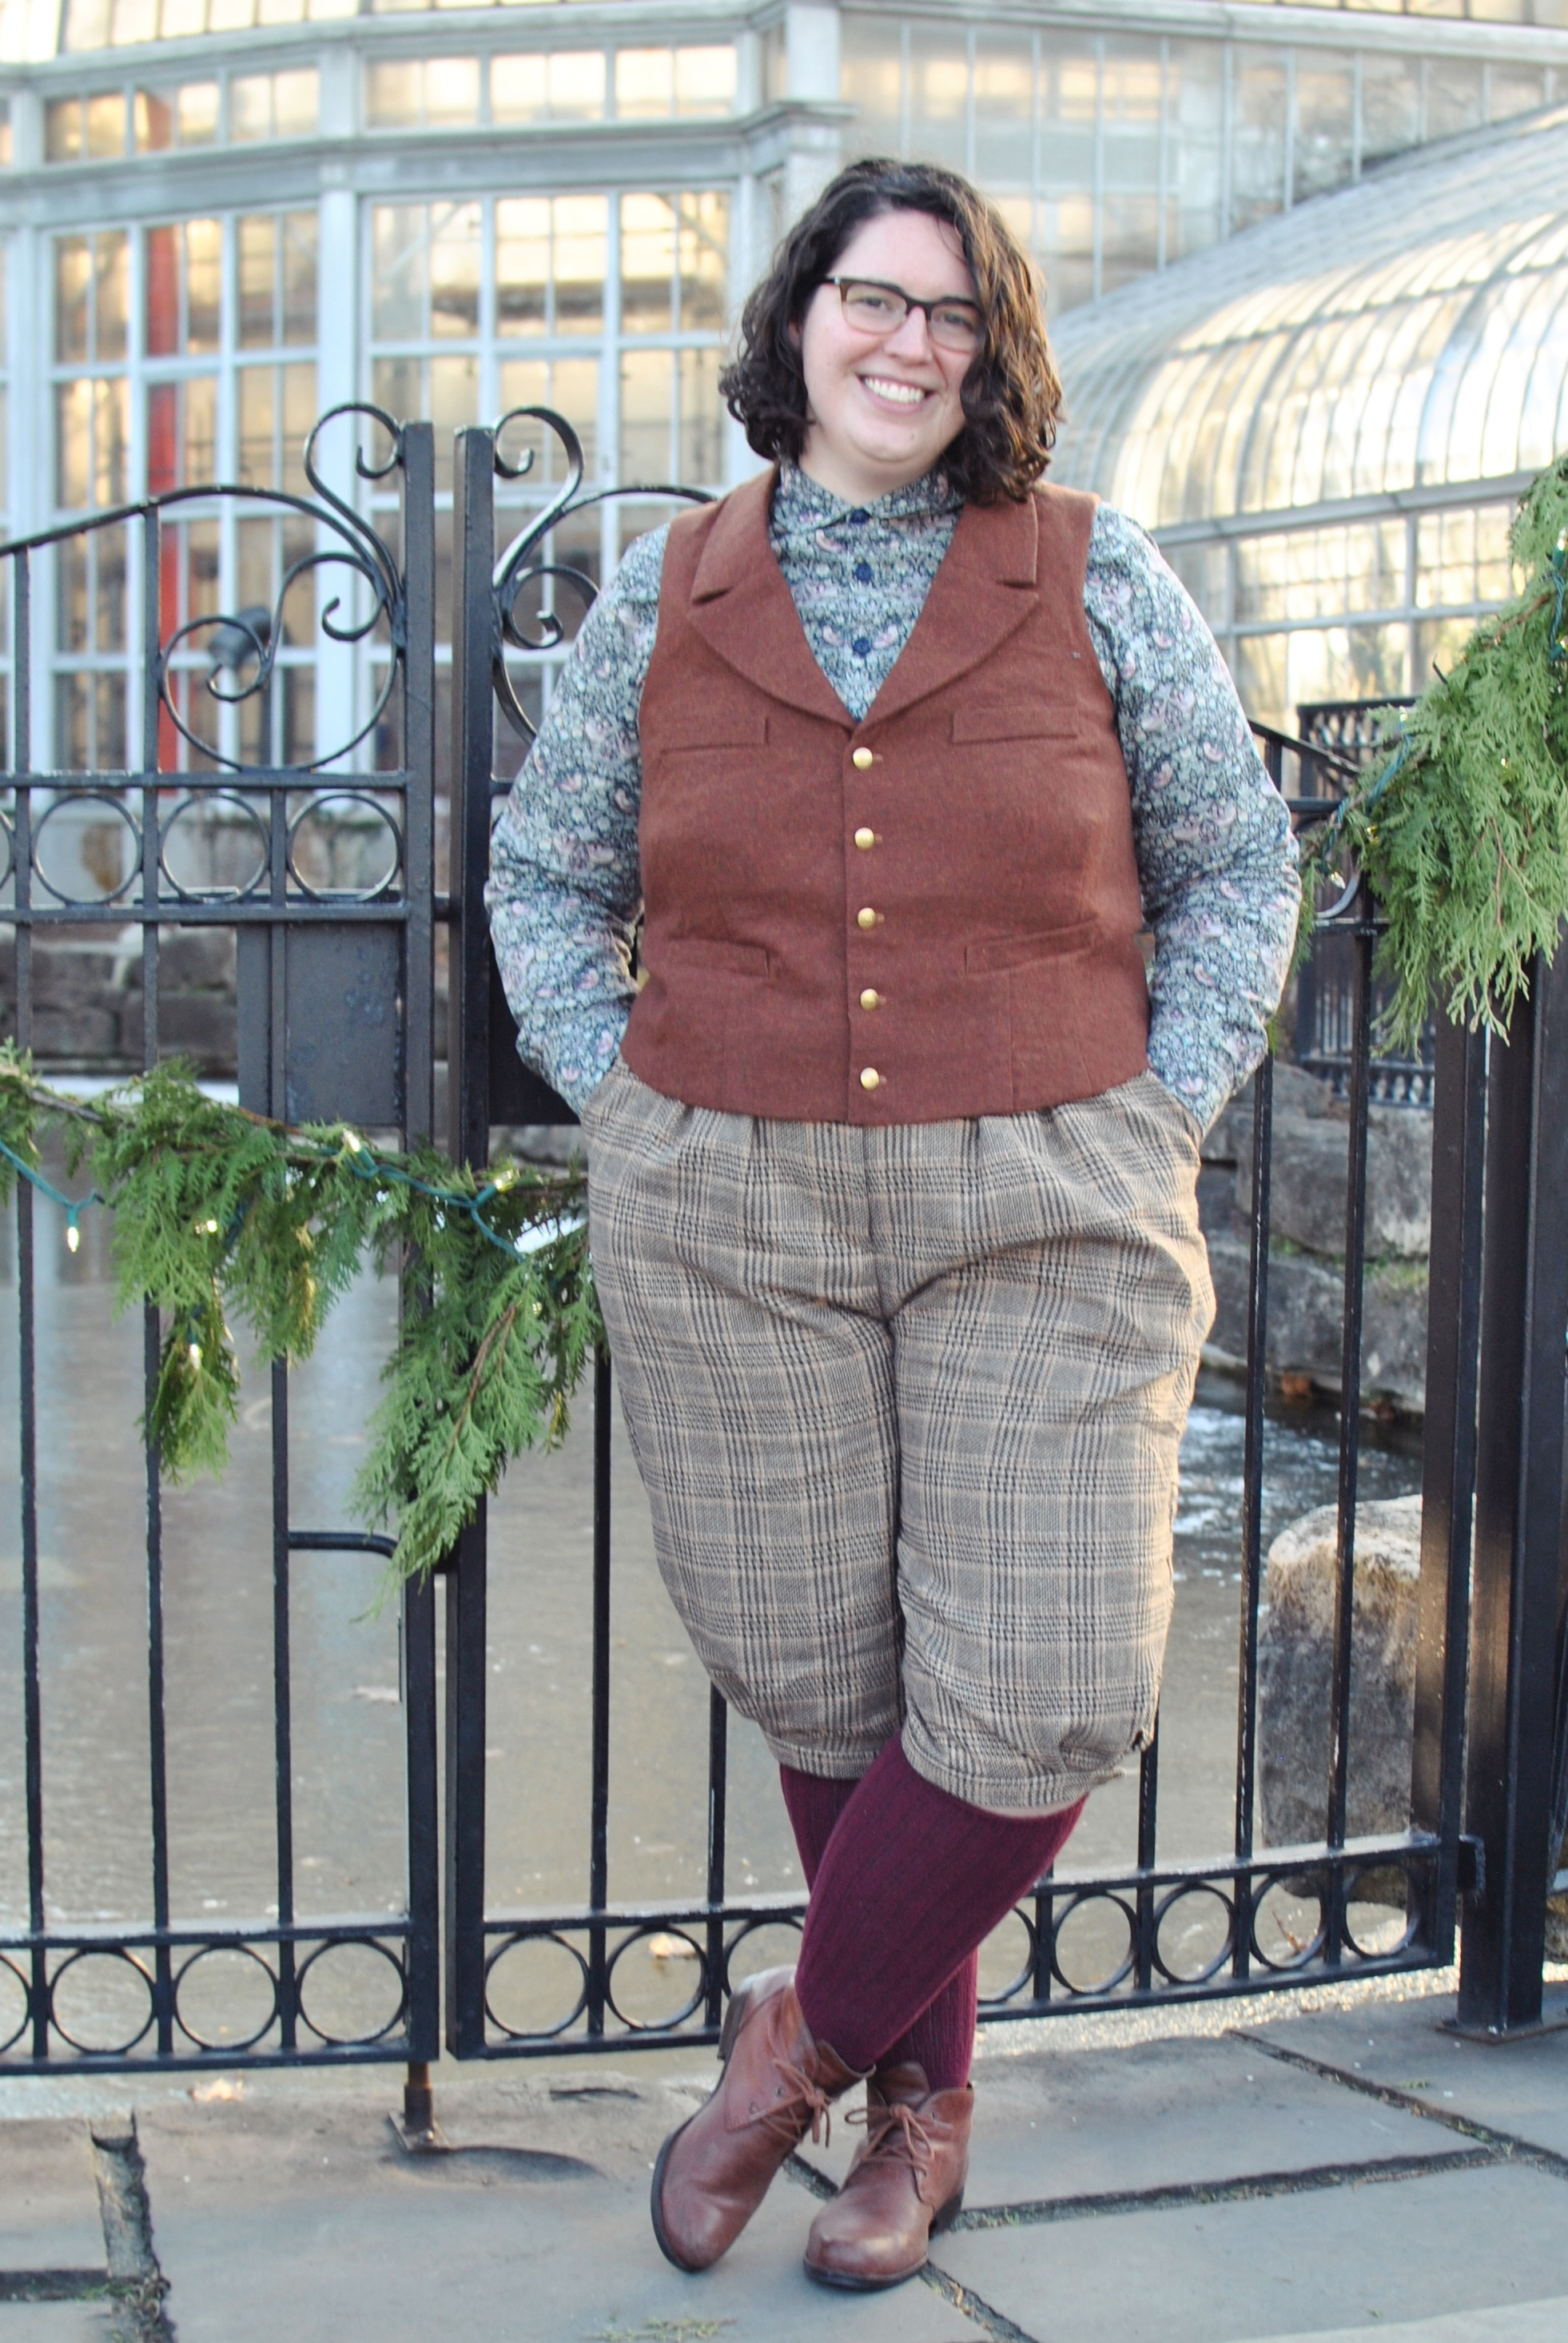 Shannon standing outdoors in front of greenhouse, wearing plaid knickerbockers, a rust wool vest, and a patterned shirt. Her legs are crossed and her hands in her pockets.